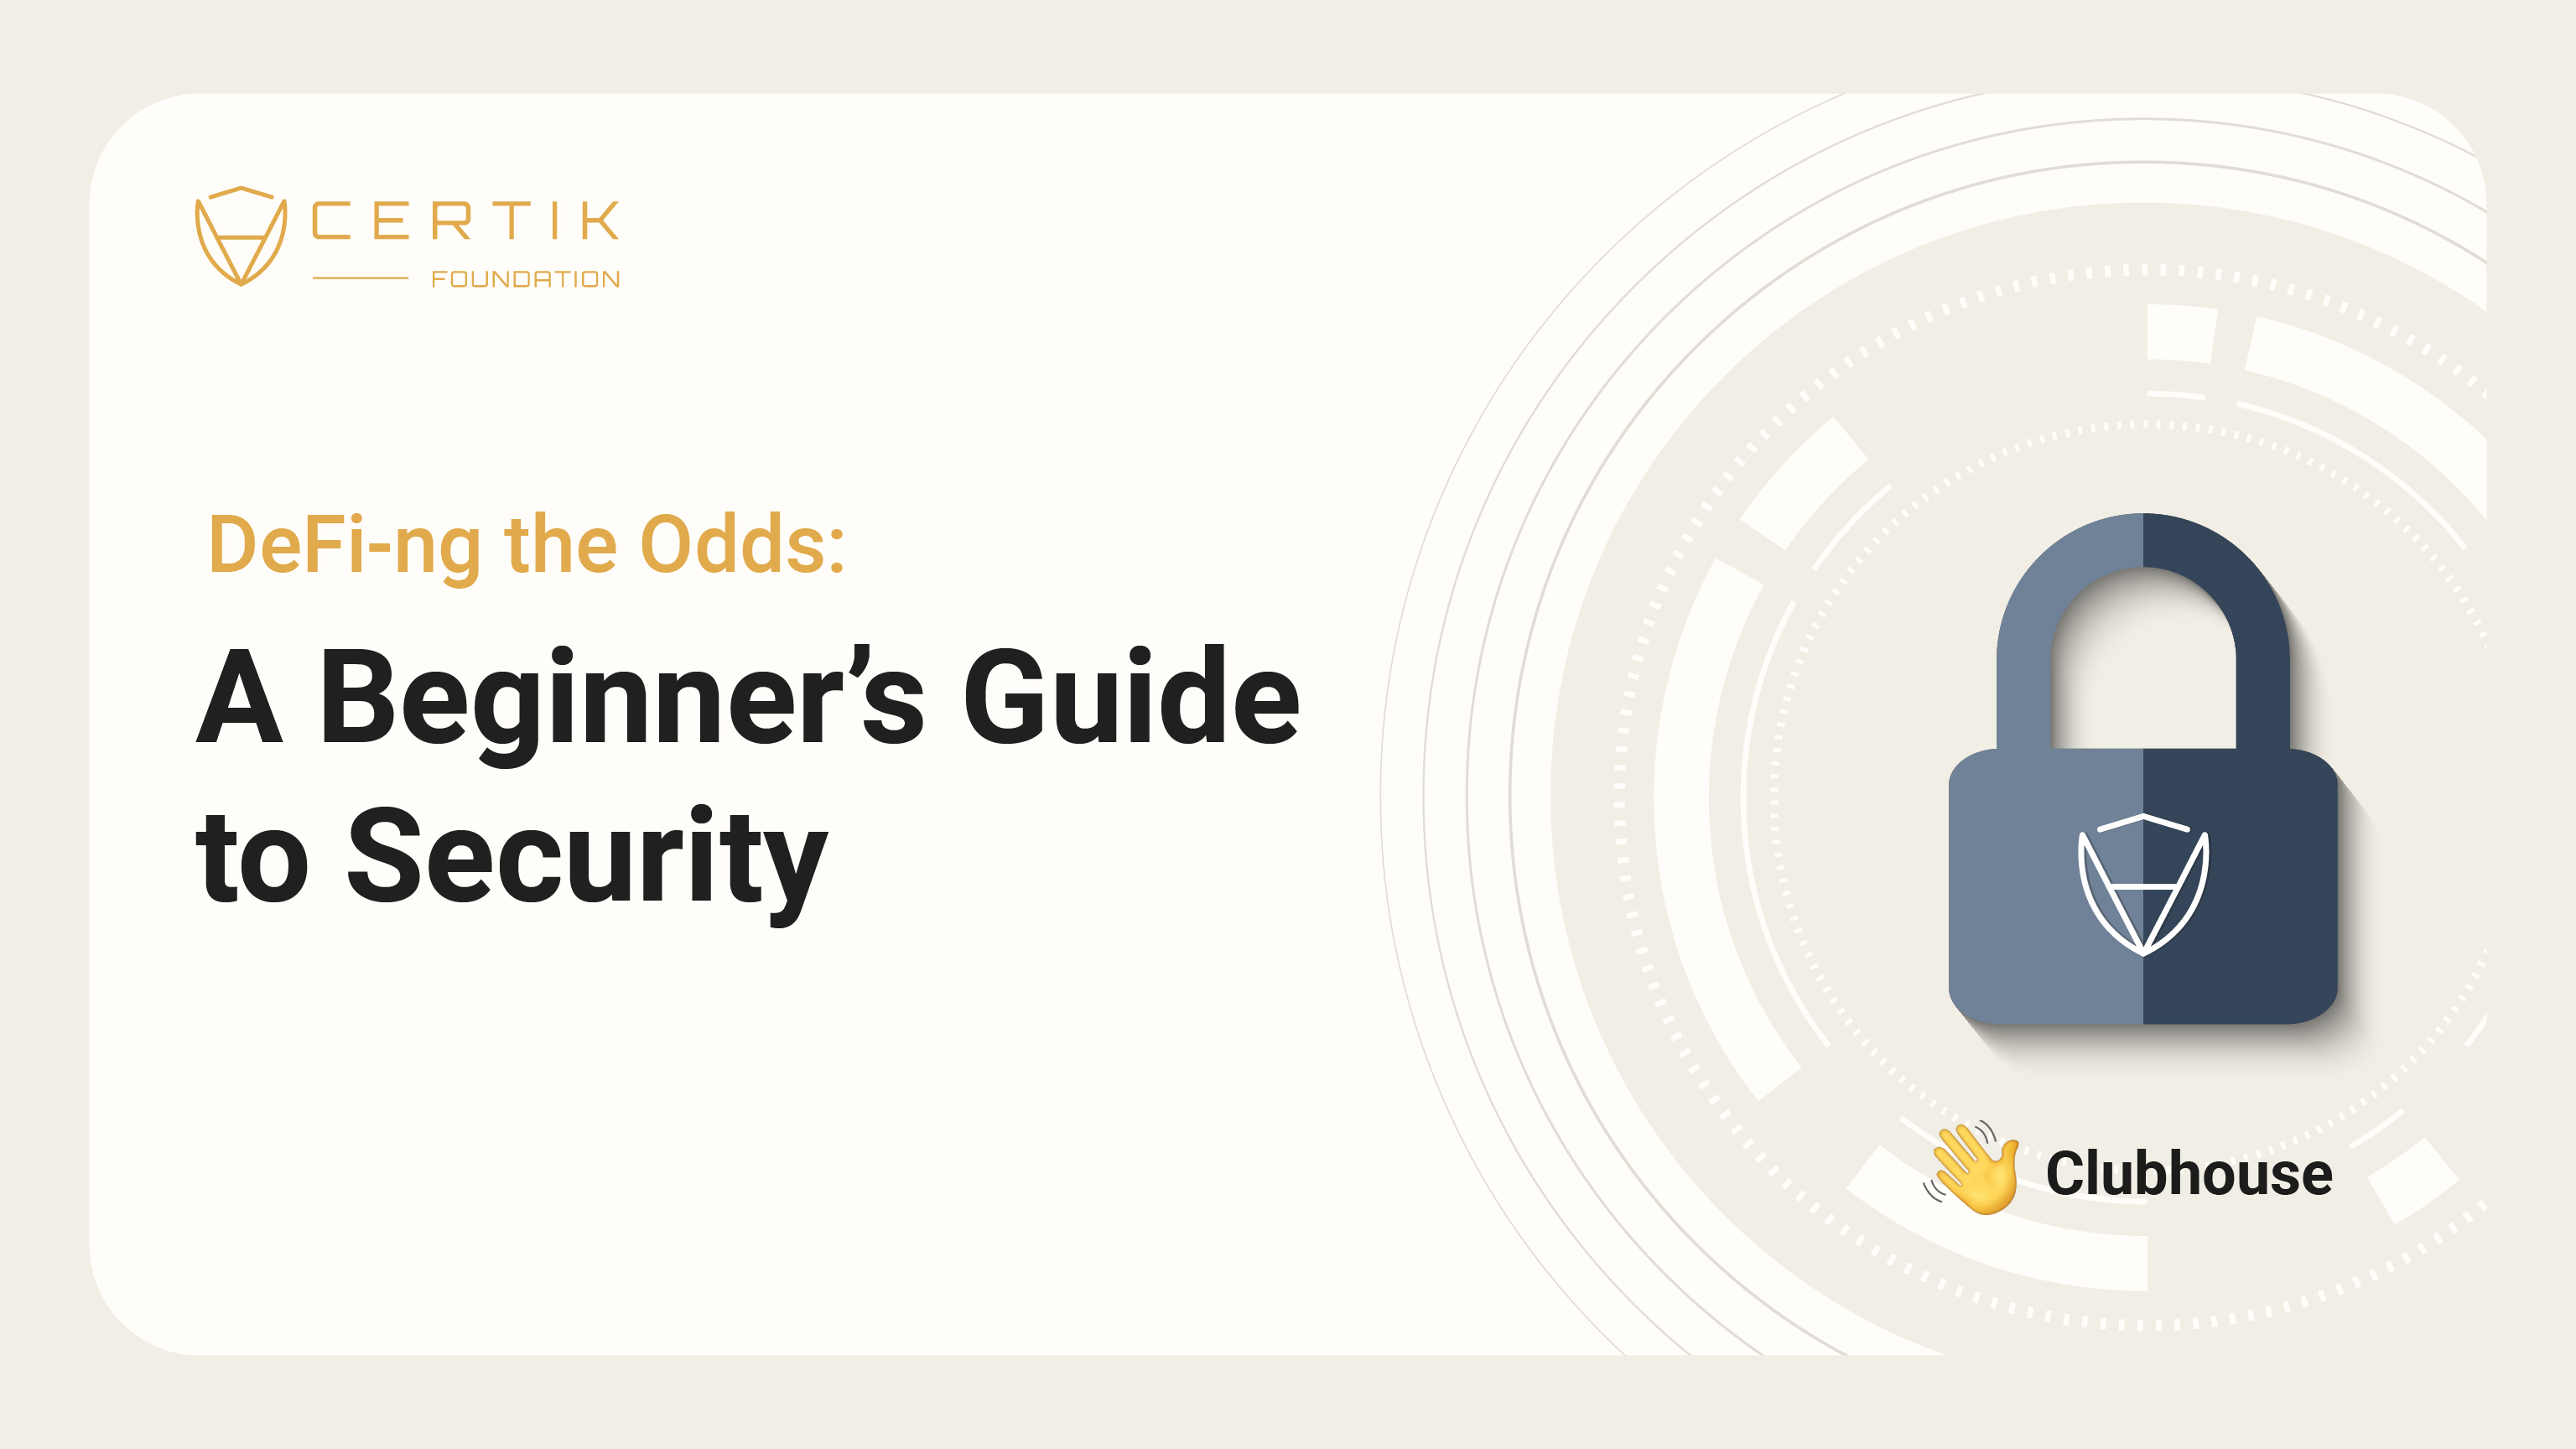 DeFi-ng the Odds: A Beginner's Guide to Security